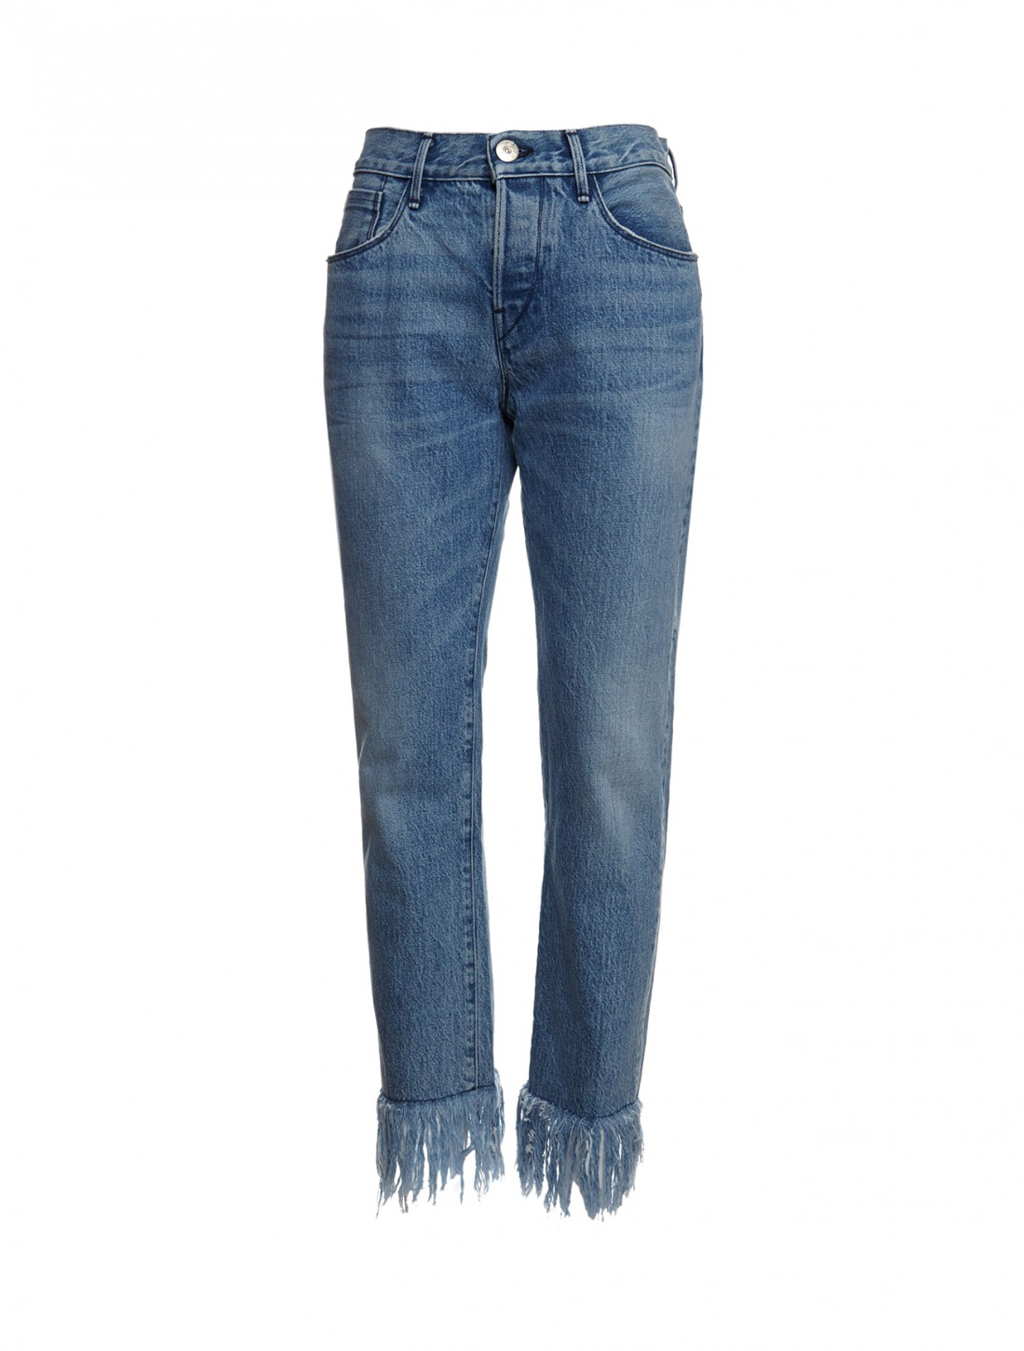 3x1 Fringe bottom jeans